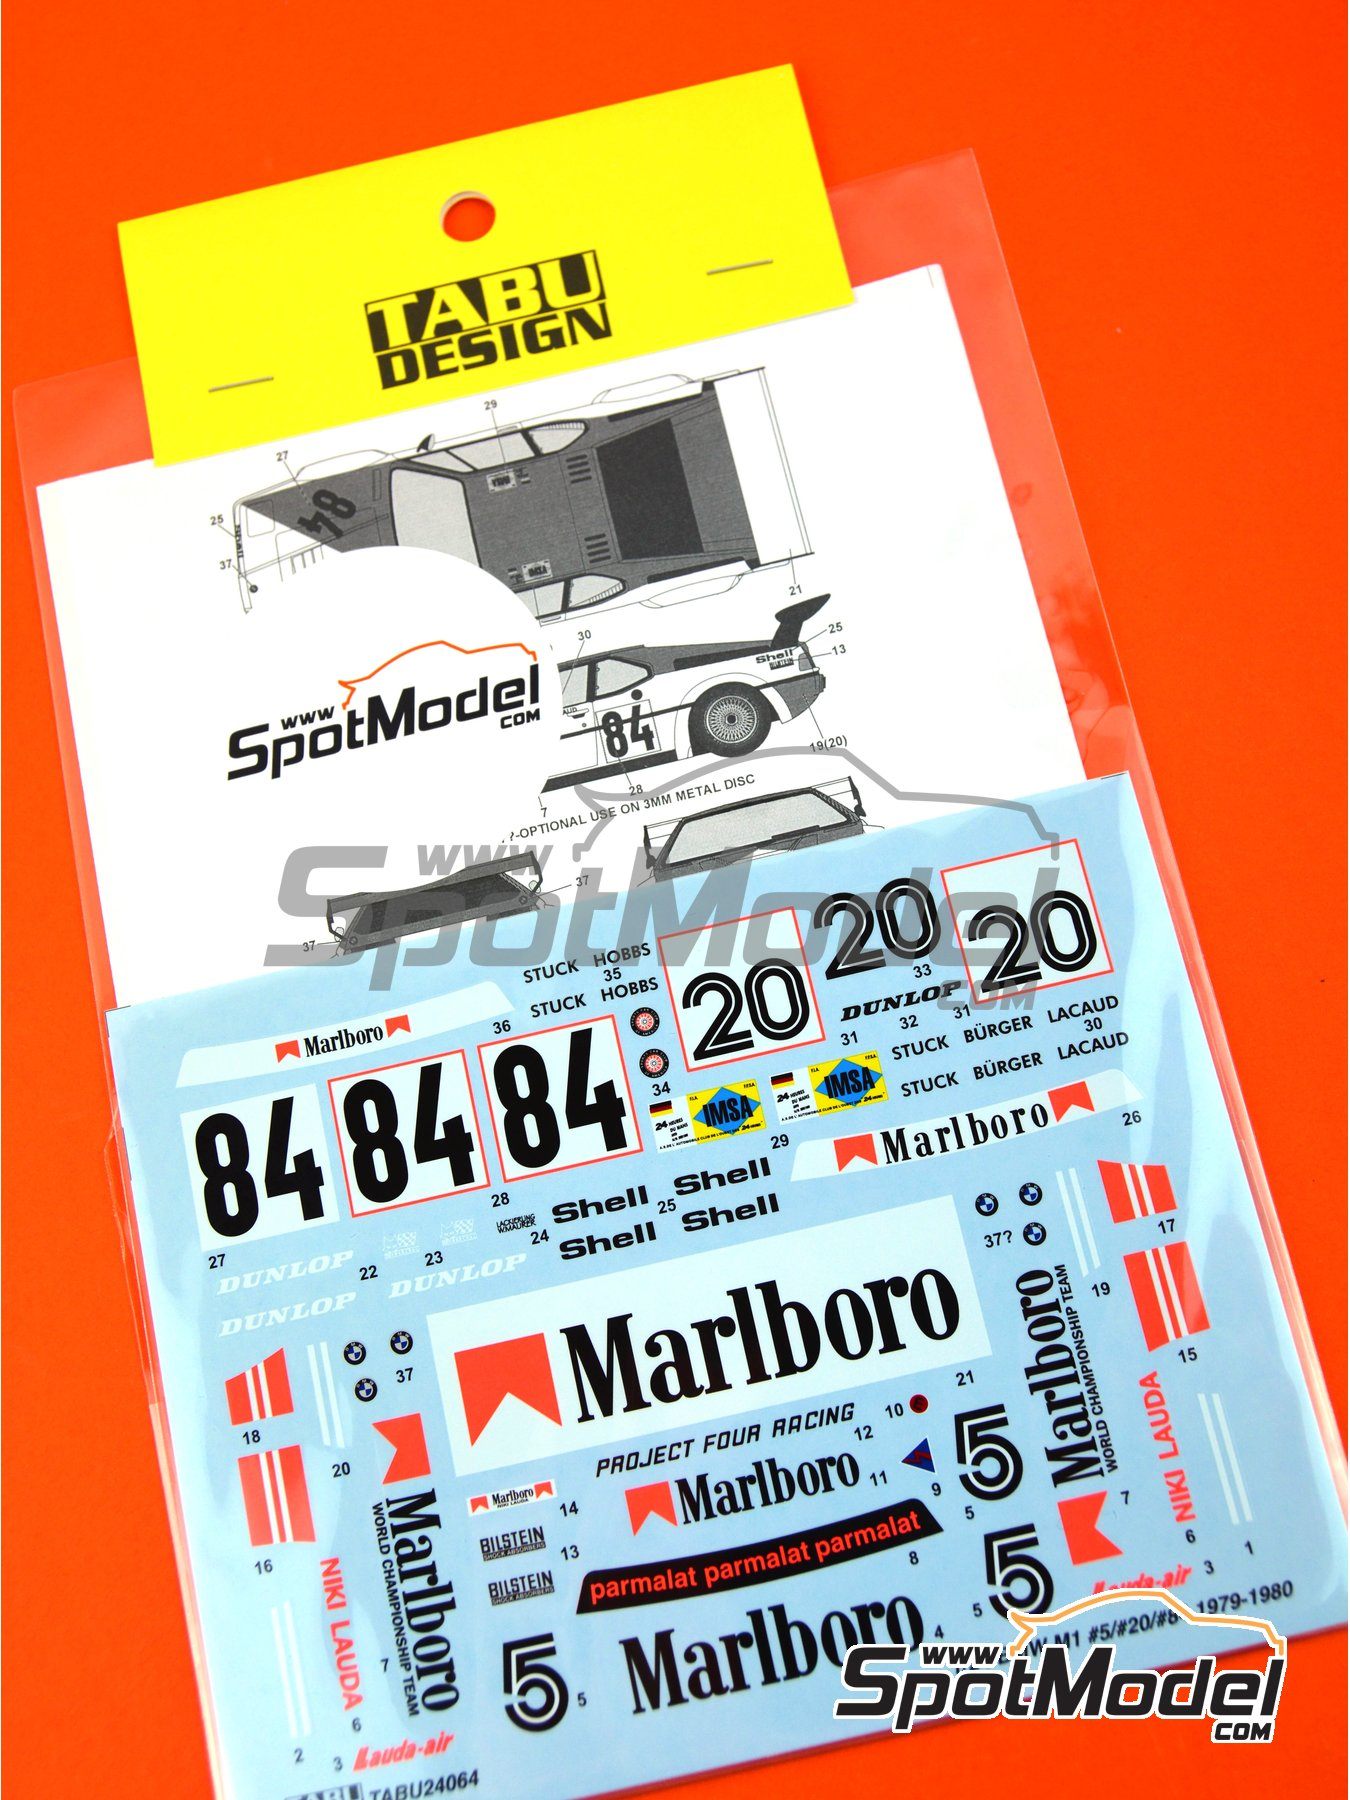 BMW M1 Group A Marlboro - Procar Championship 1979  and 1980 | Marking / livery in 1/24 scale manufactured by Tabu Design (ref. TABU24064) image